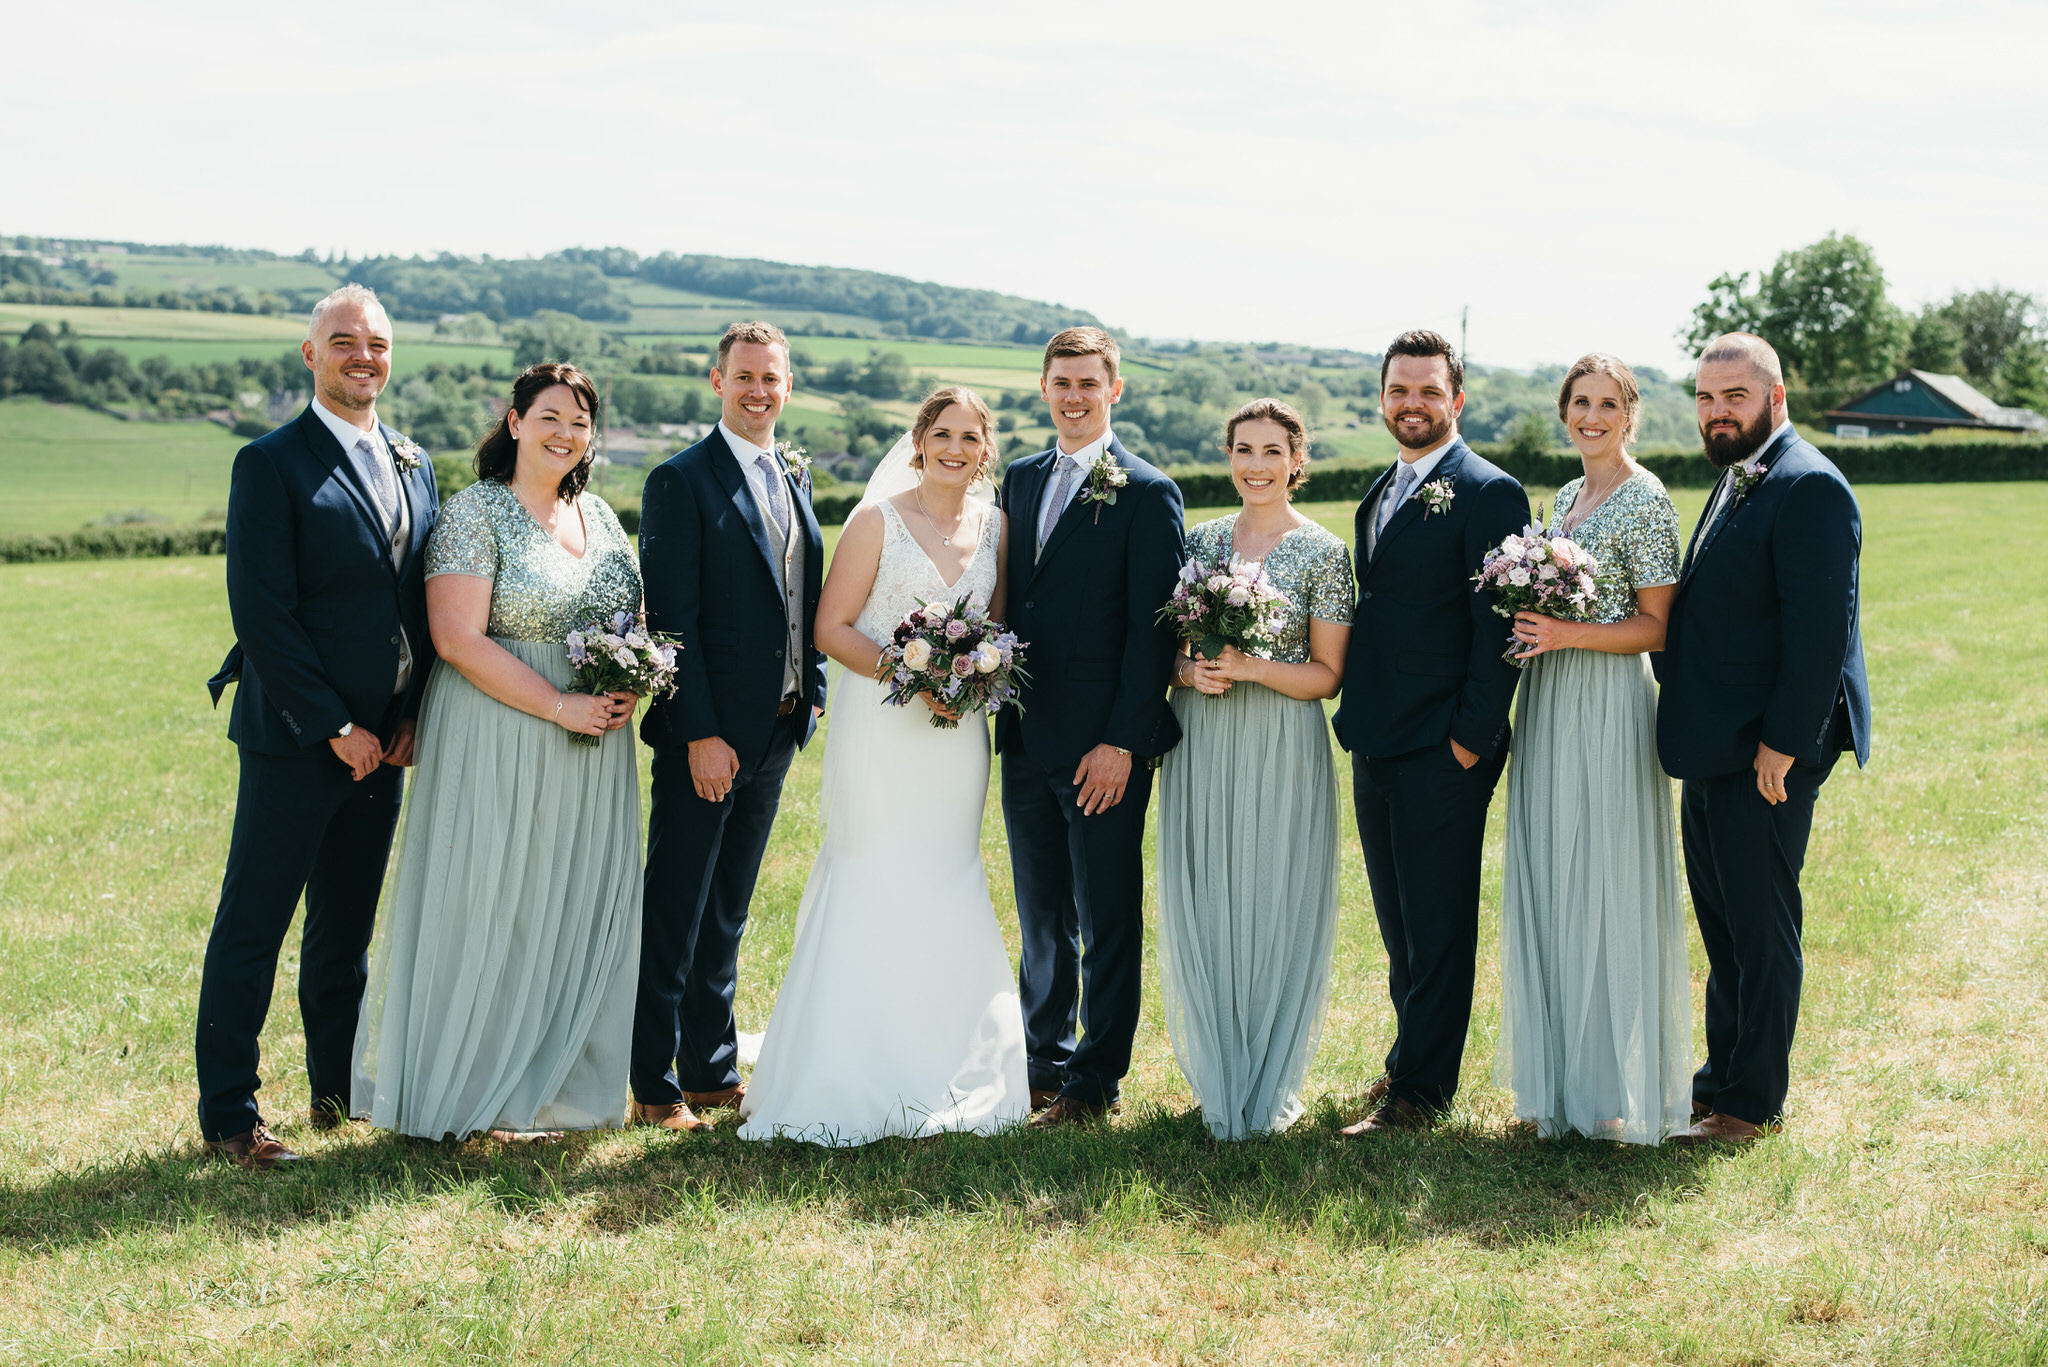 Outdoor somerset wedding photographer 68